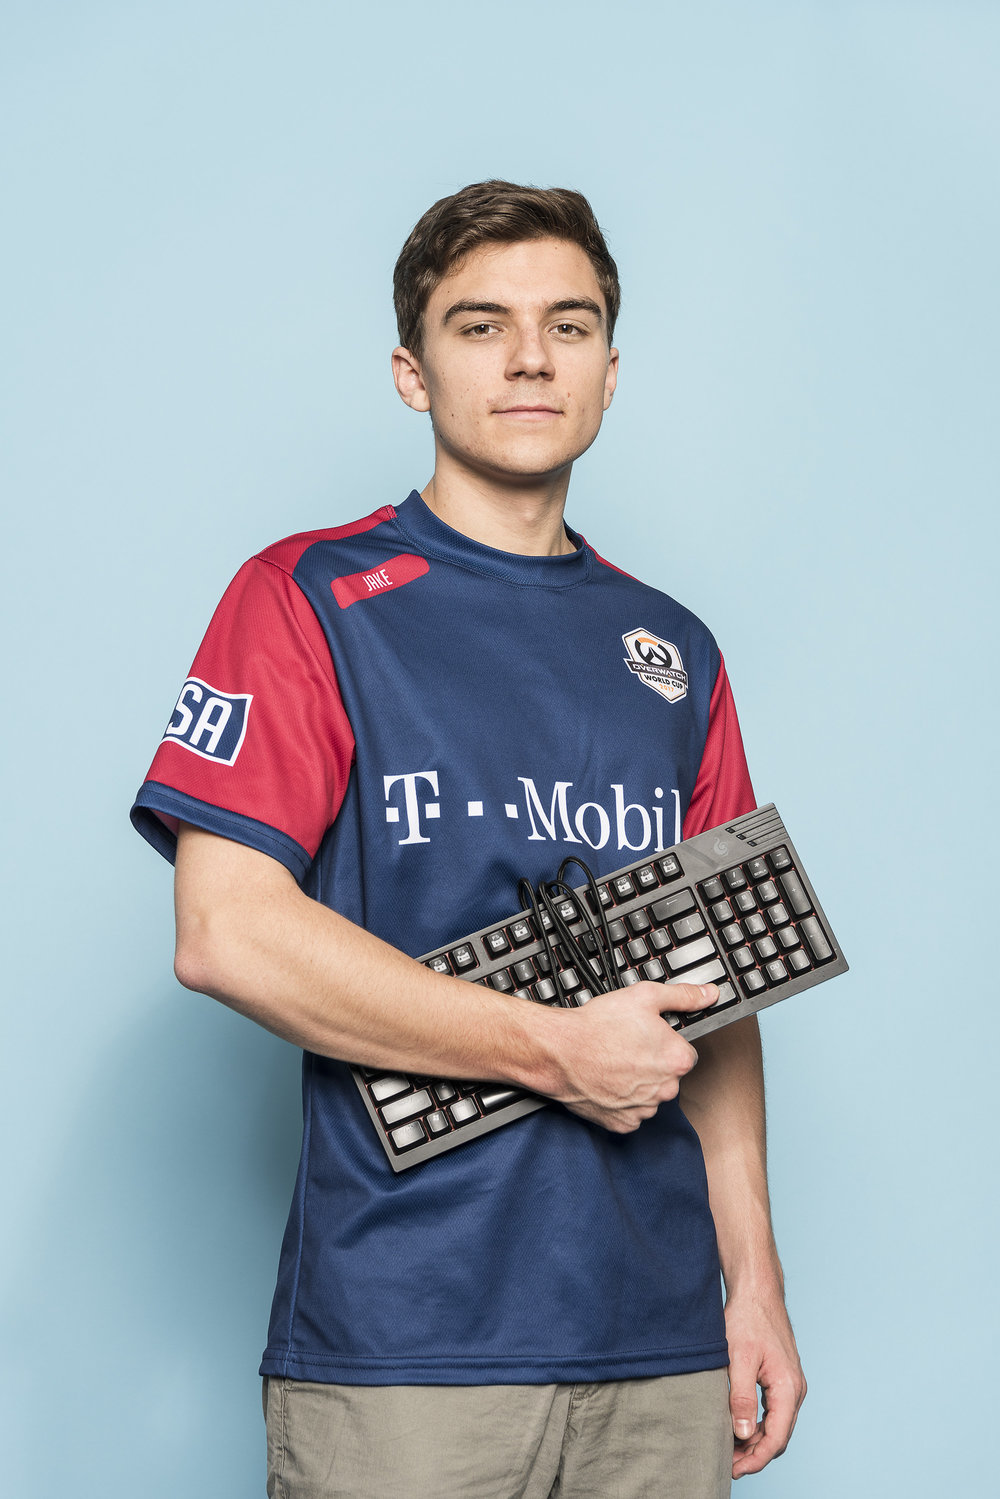 WIRED - Professional (ESports) Athletes